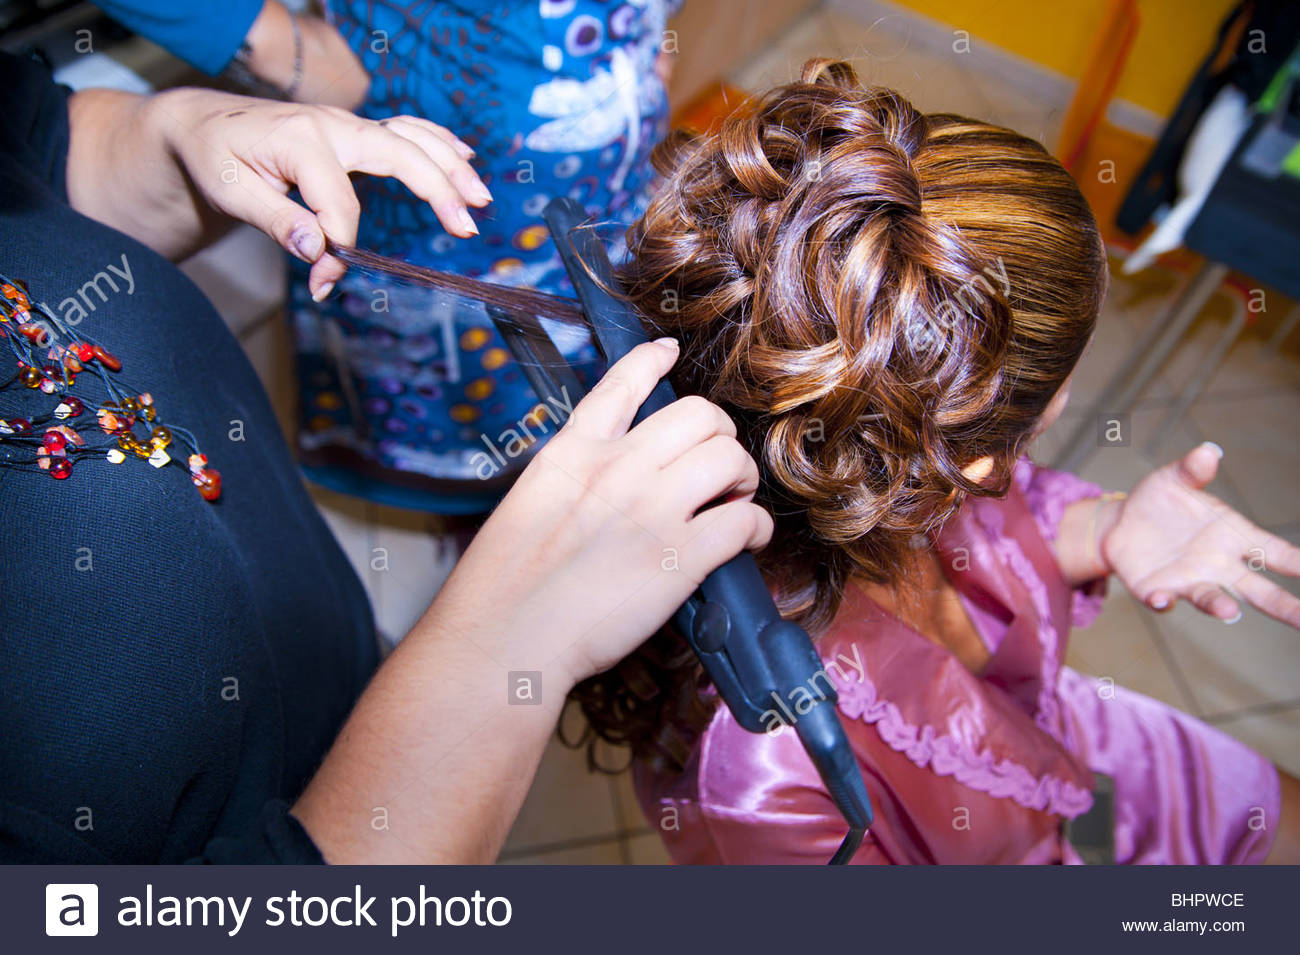 hairdresser applying a straight iron on a woman hairdo - Stock Image